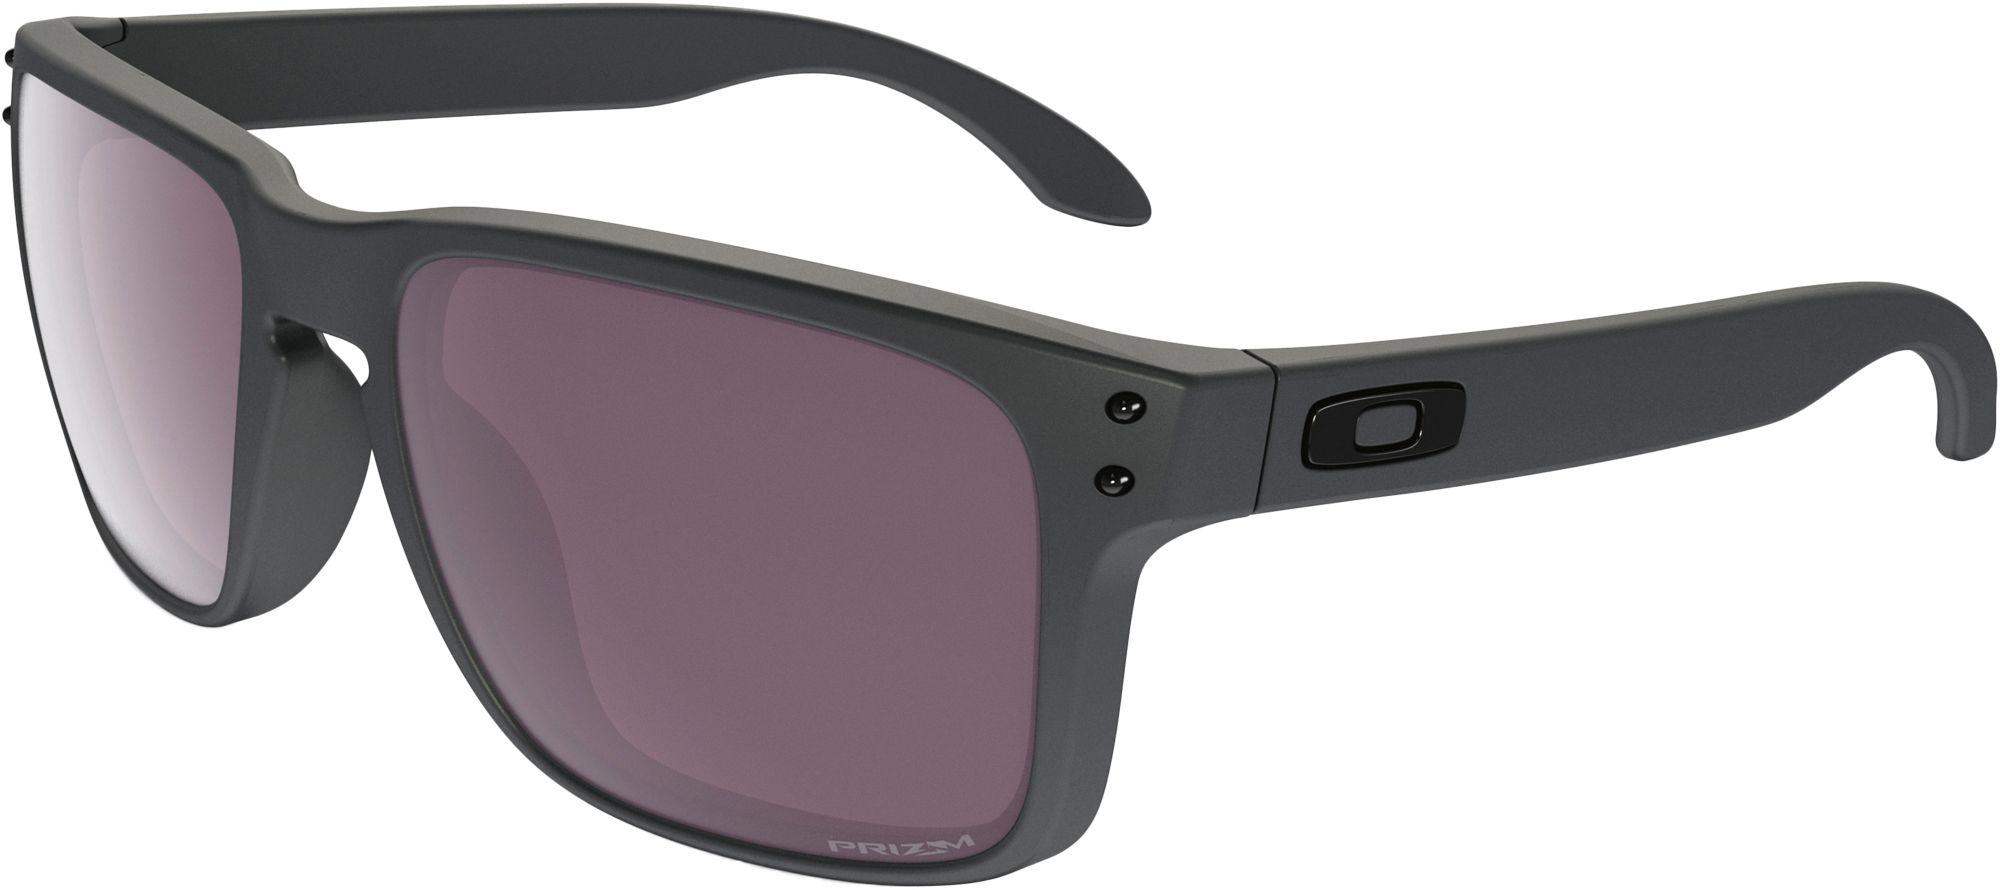 afac1d63096d6 Oakley - Gray Holbrook Prizm Daily Polarized Steel Collection Sunglasses  for Men - Lyst. View fullscreen